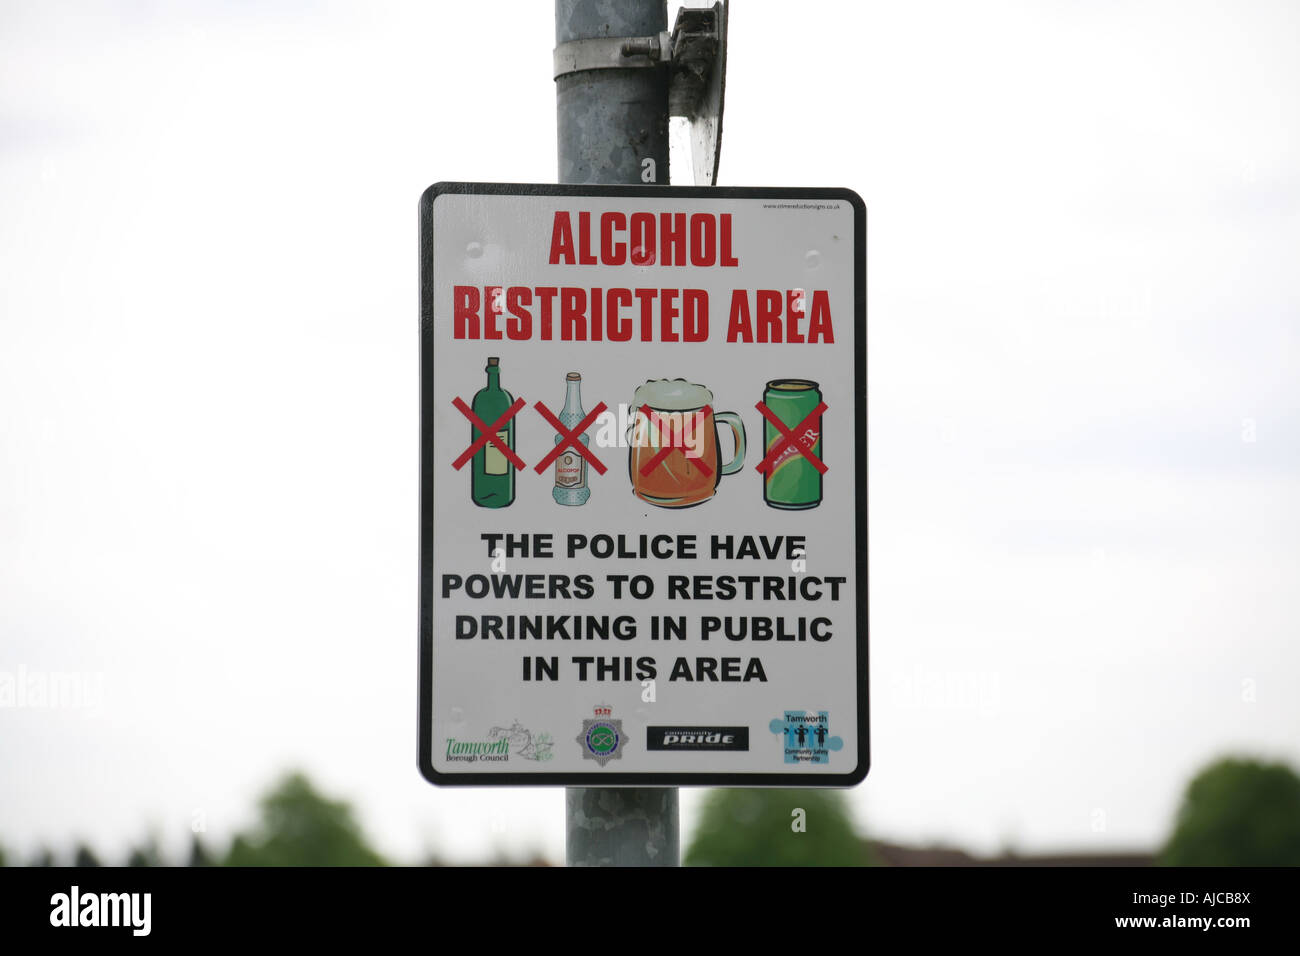 Alcohol Restricted Area sign 002 - Stock Image